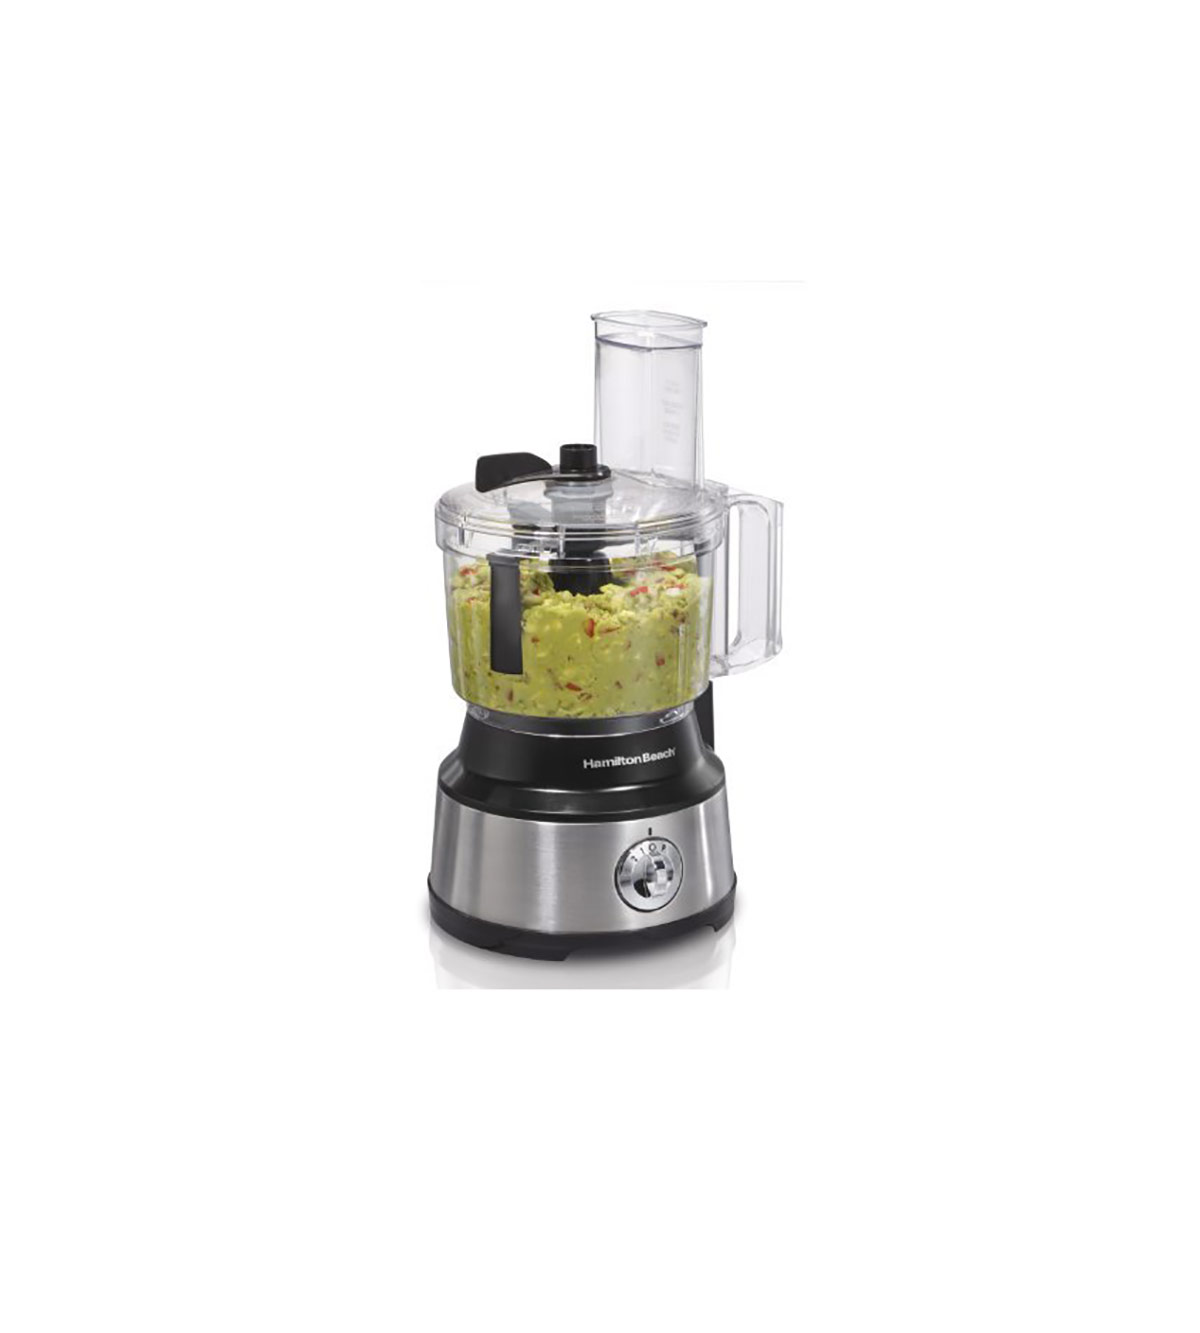 Hamilton Beach 10-Cup Food Processor with Bowl Scraper